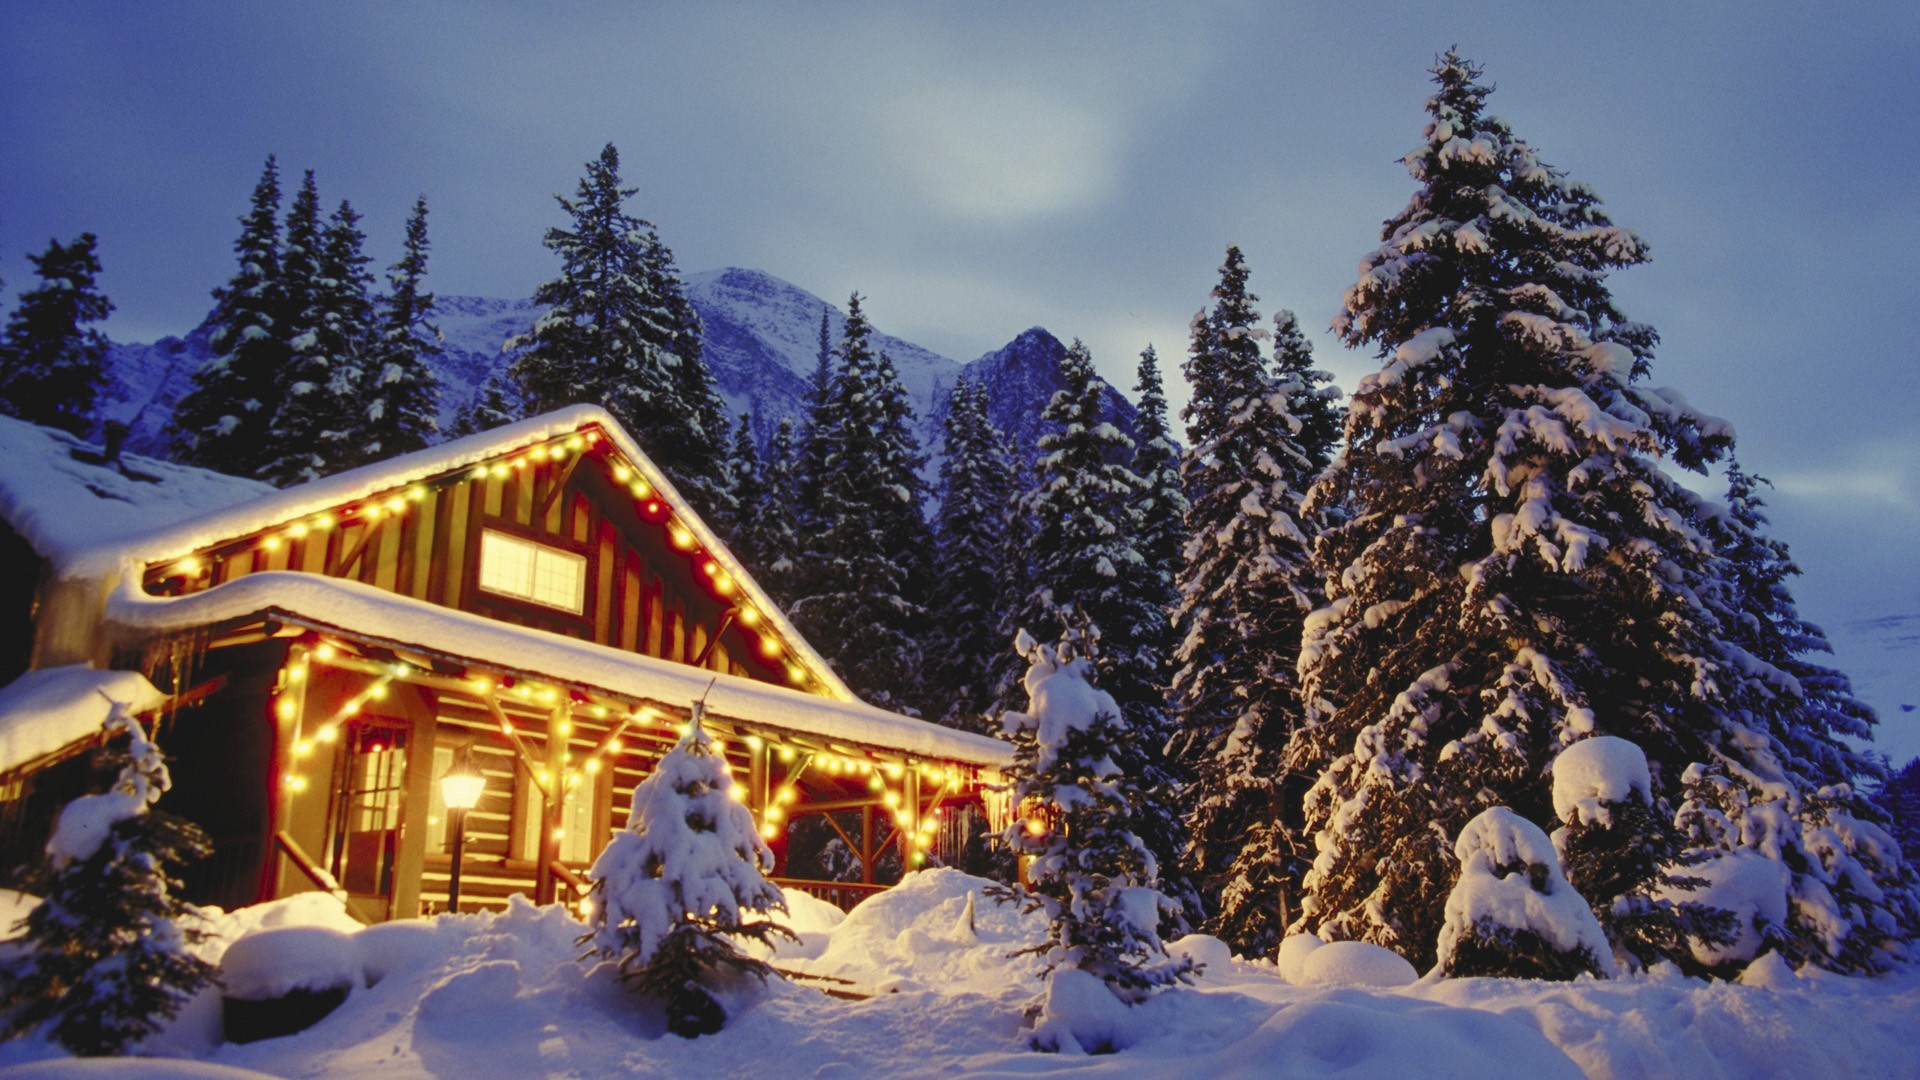 Christmas Cabin wallpaper - 1048018